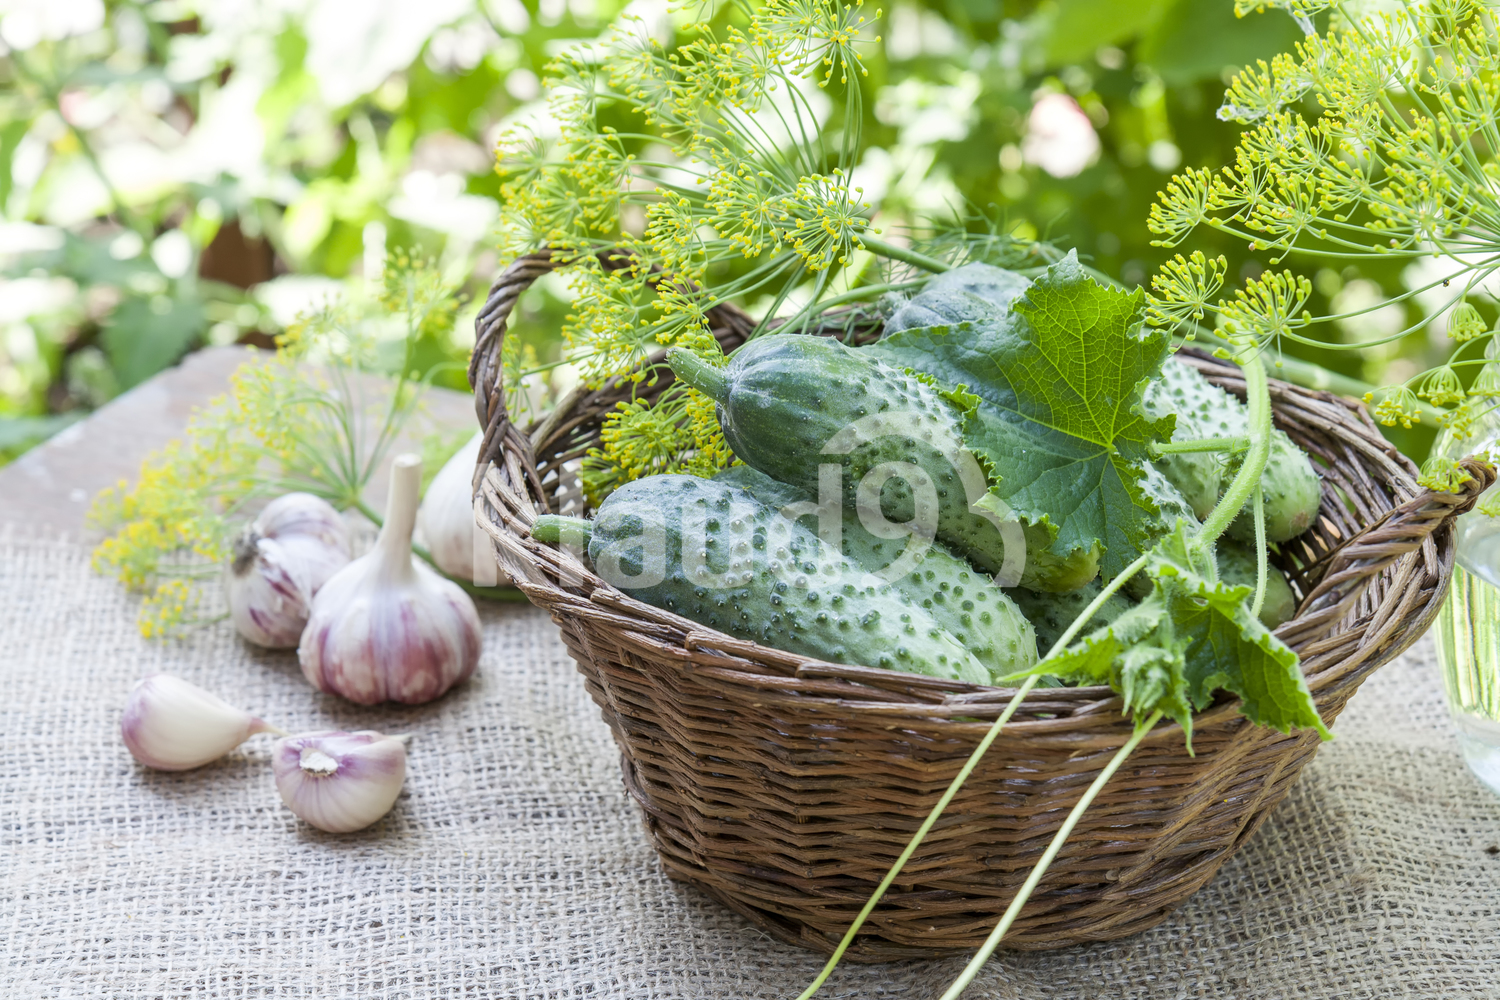 Fresh cucumbers in wicker basket with dill and garlic